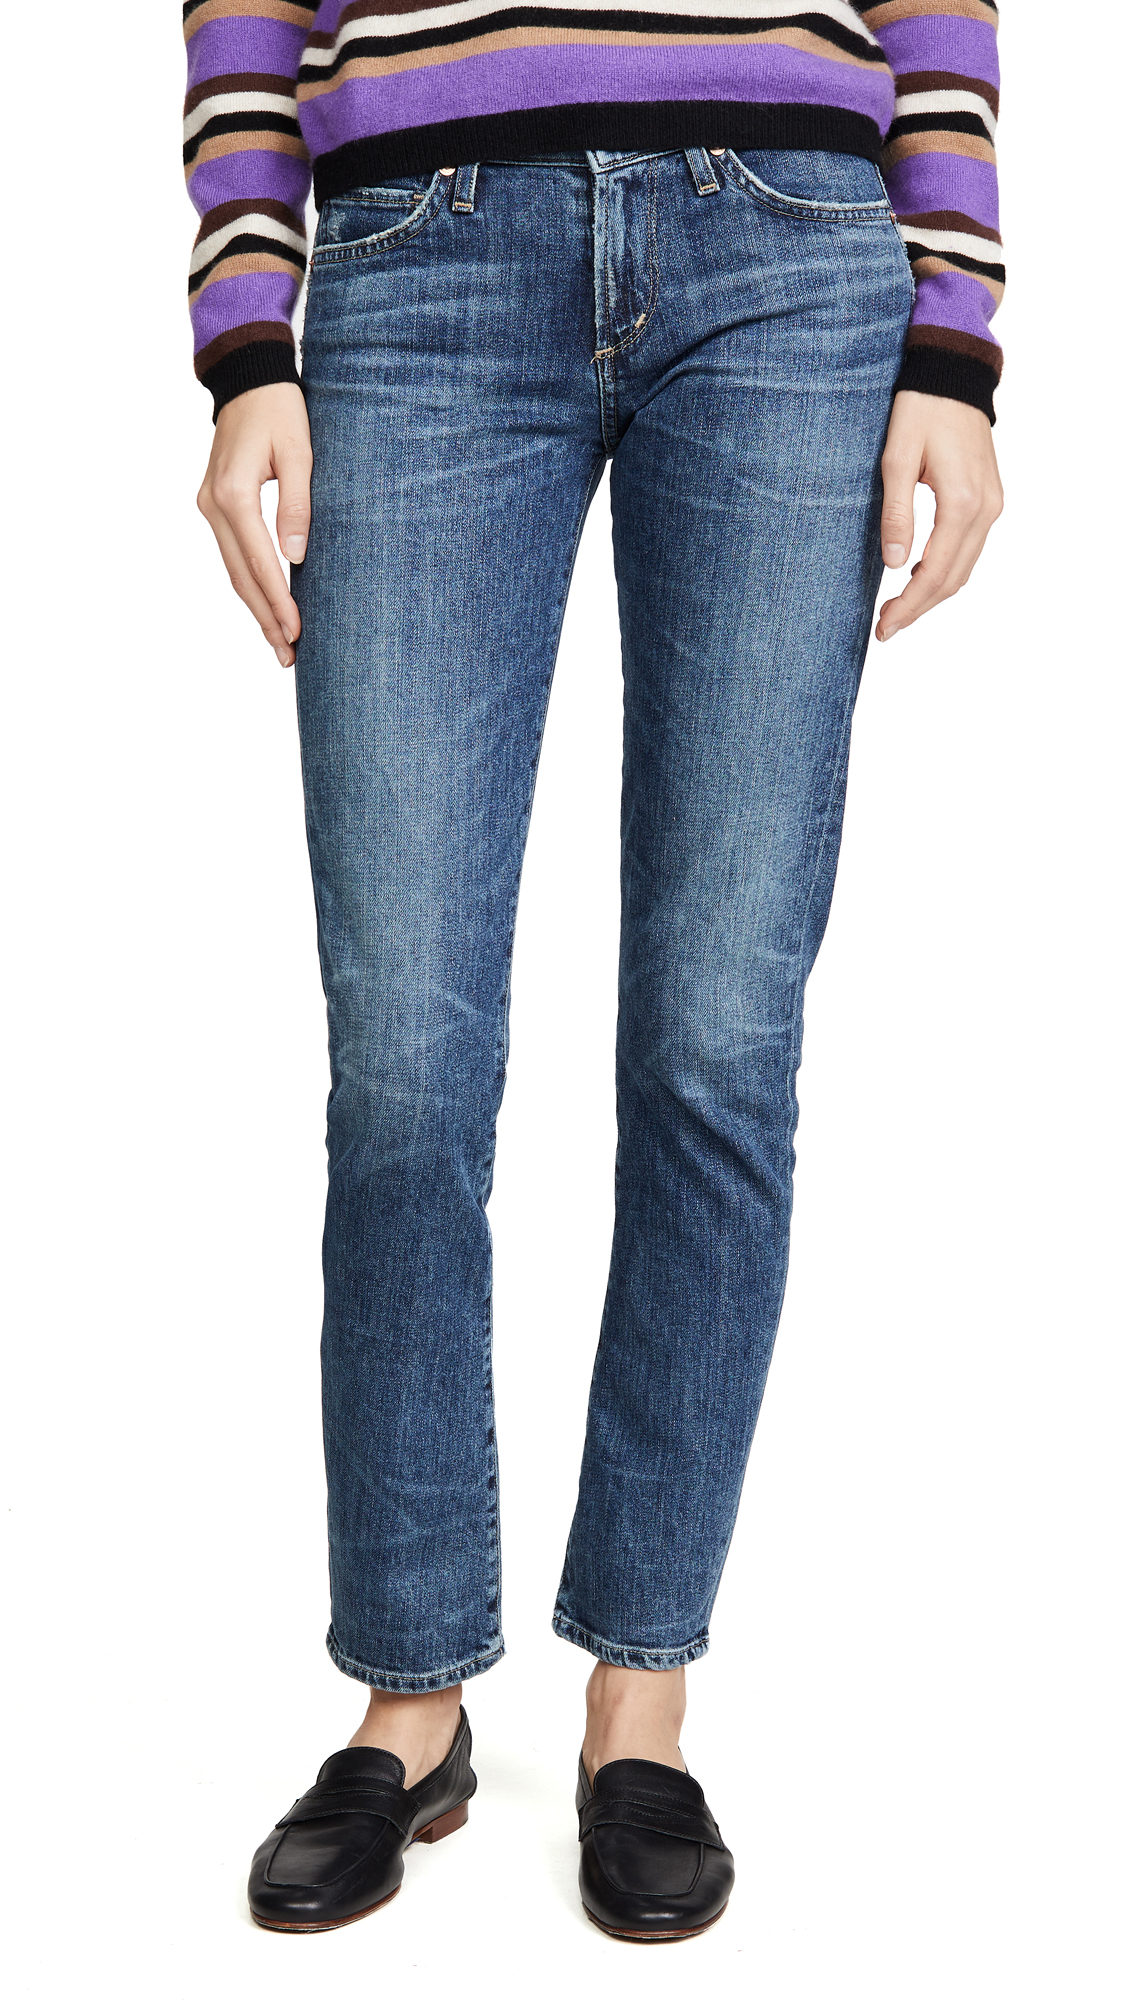 Citizens of Humanity The Racer Jeans